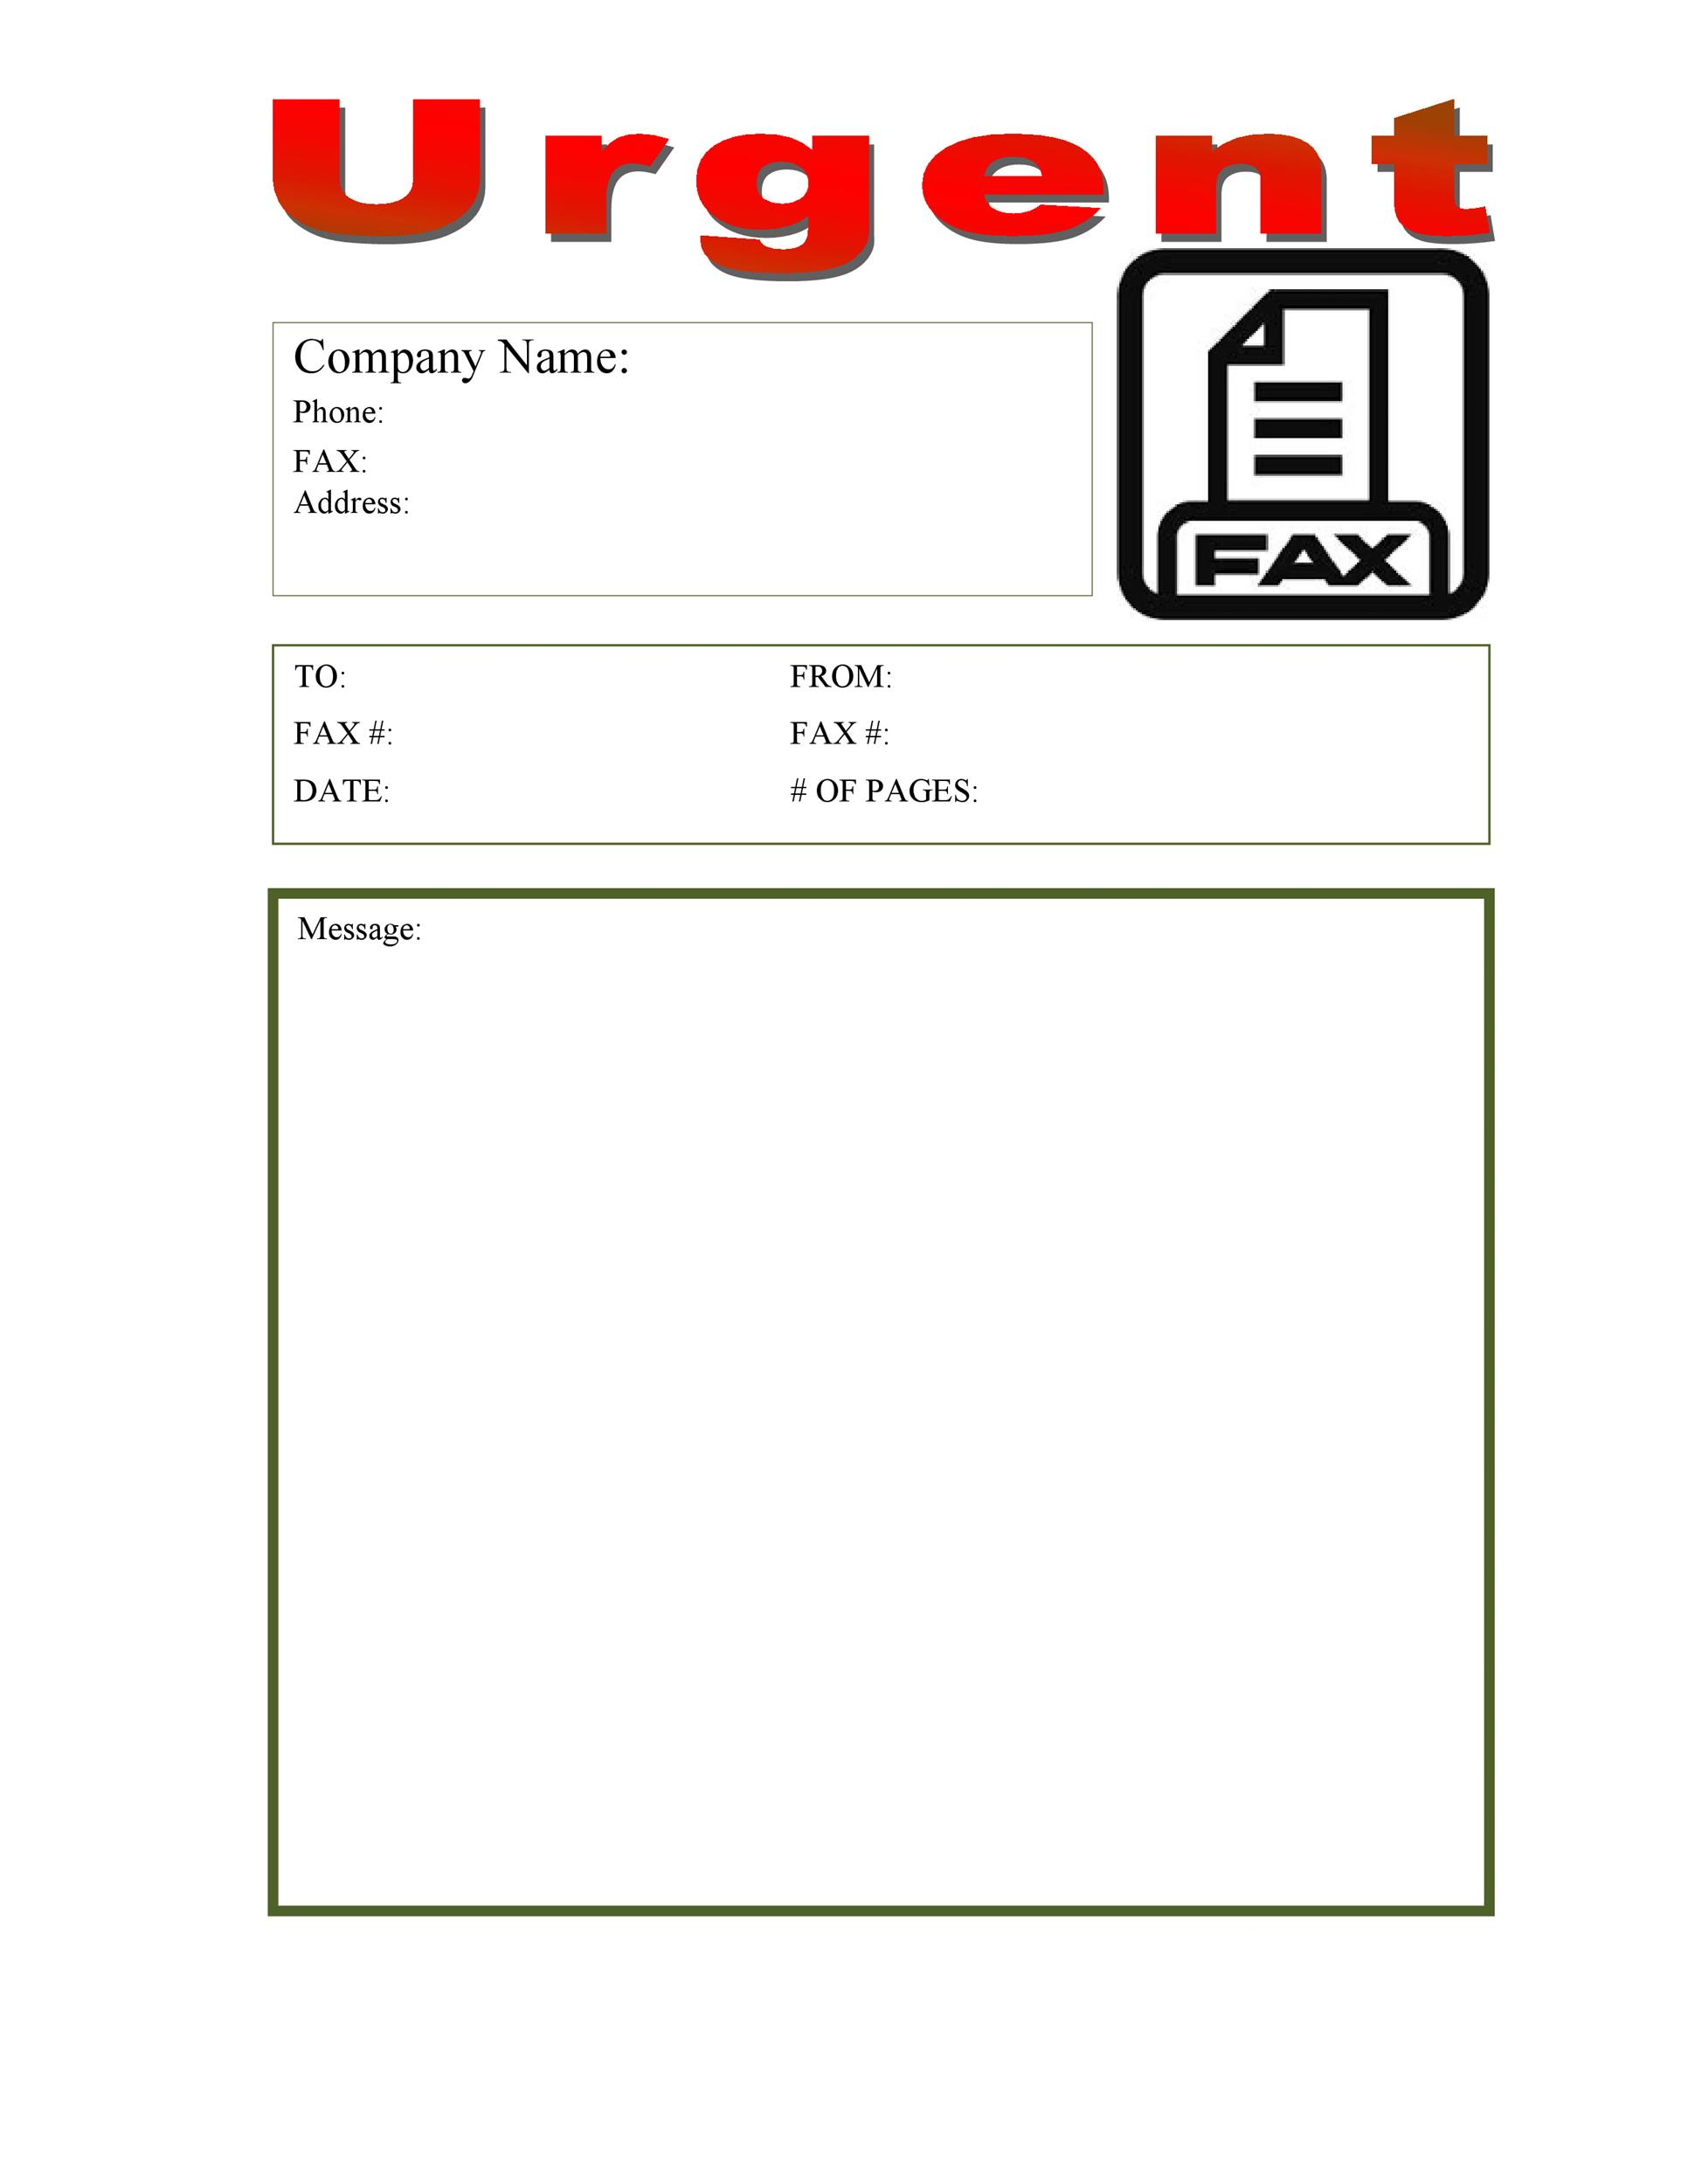 Free Fax Cover sheet Template 35